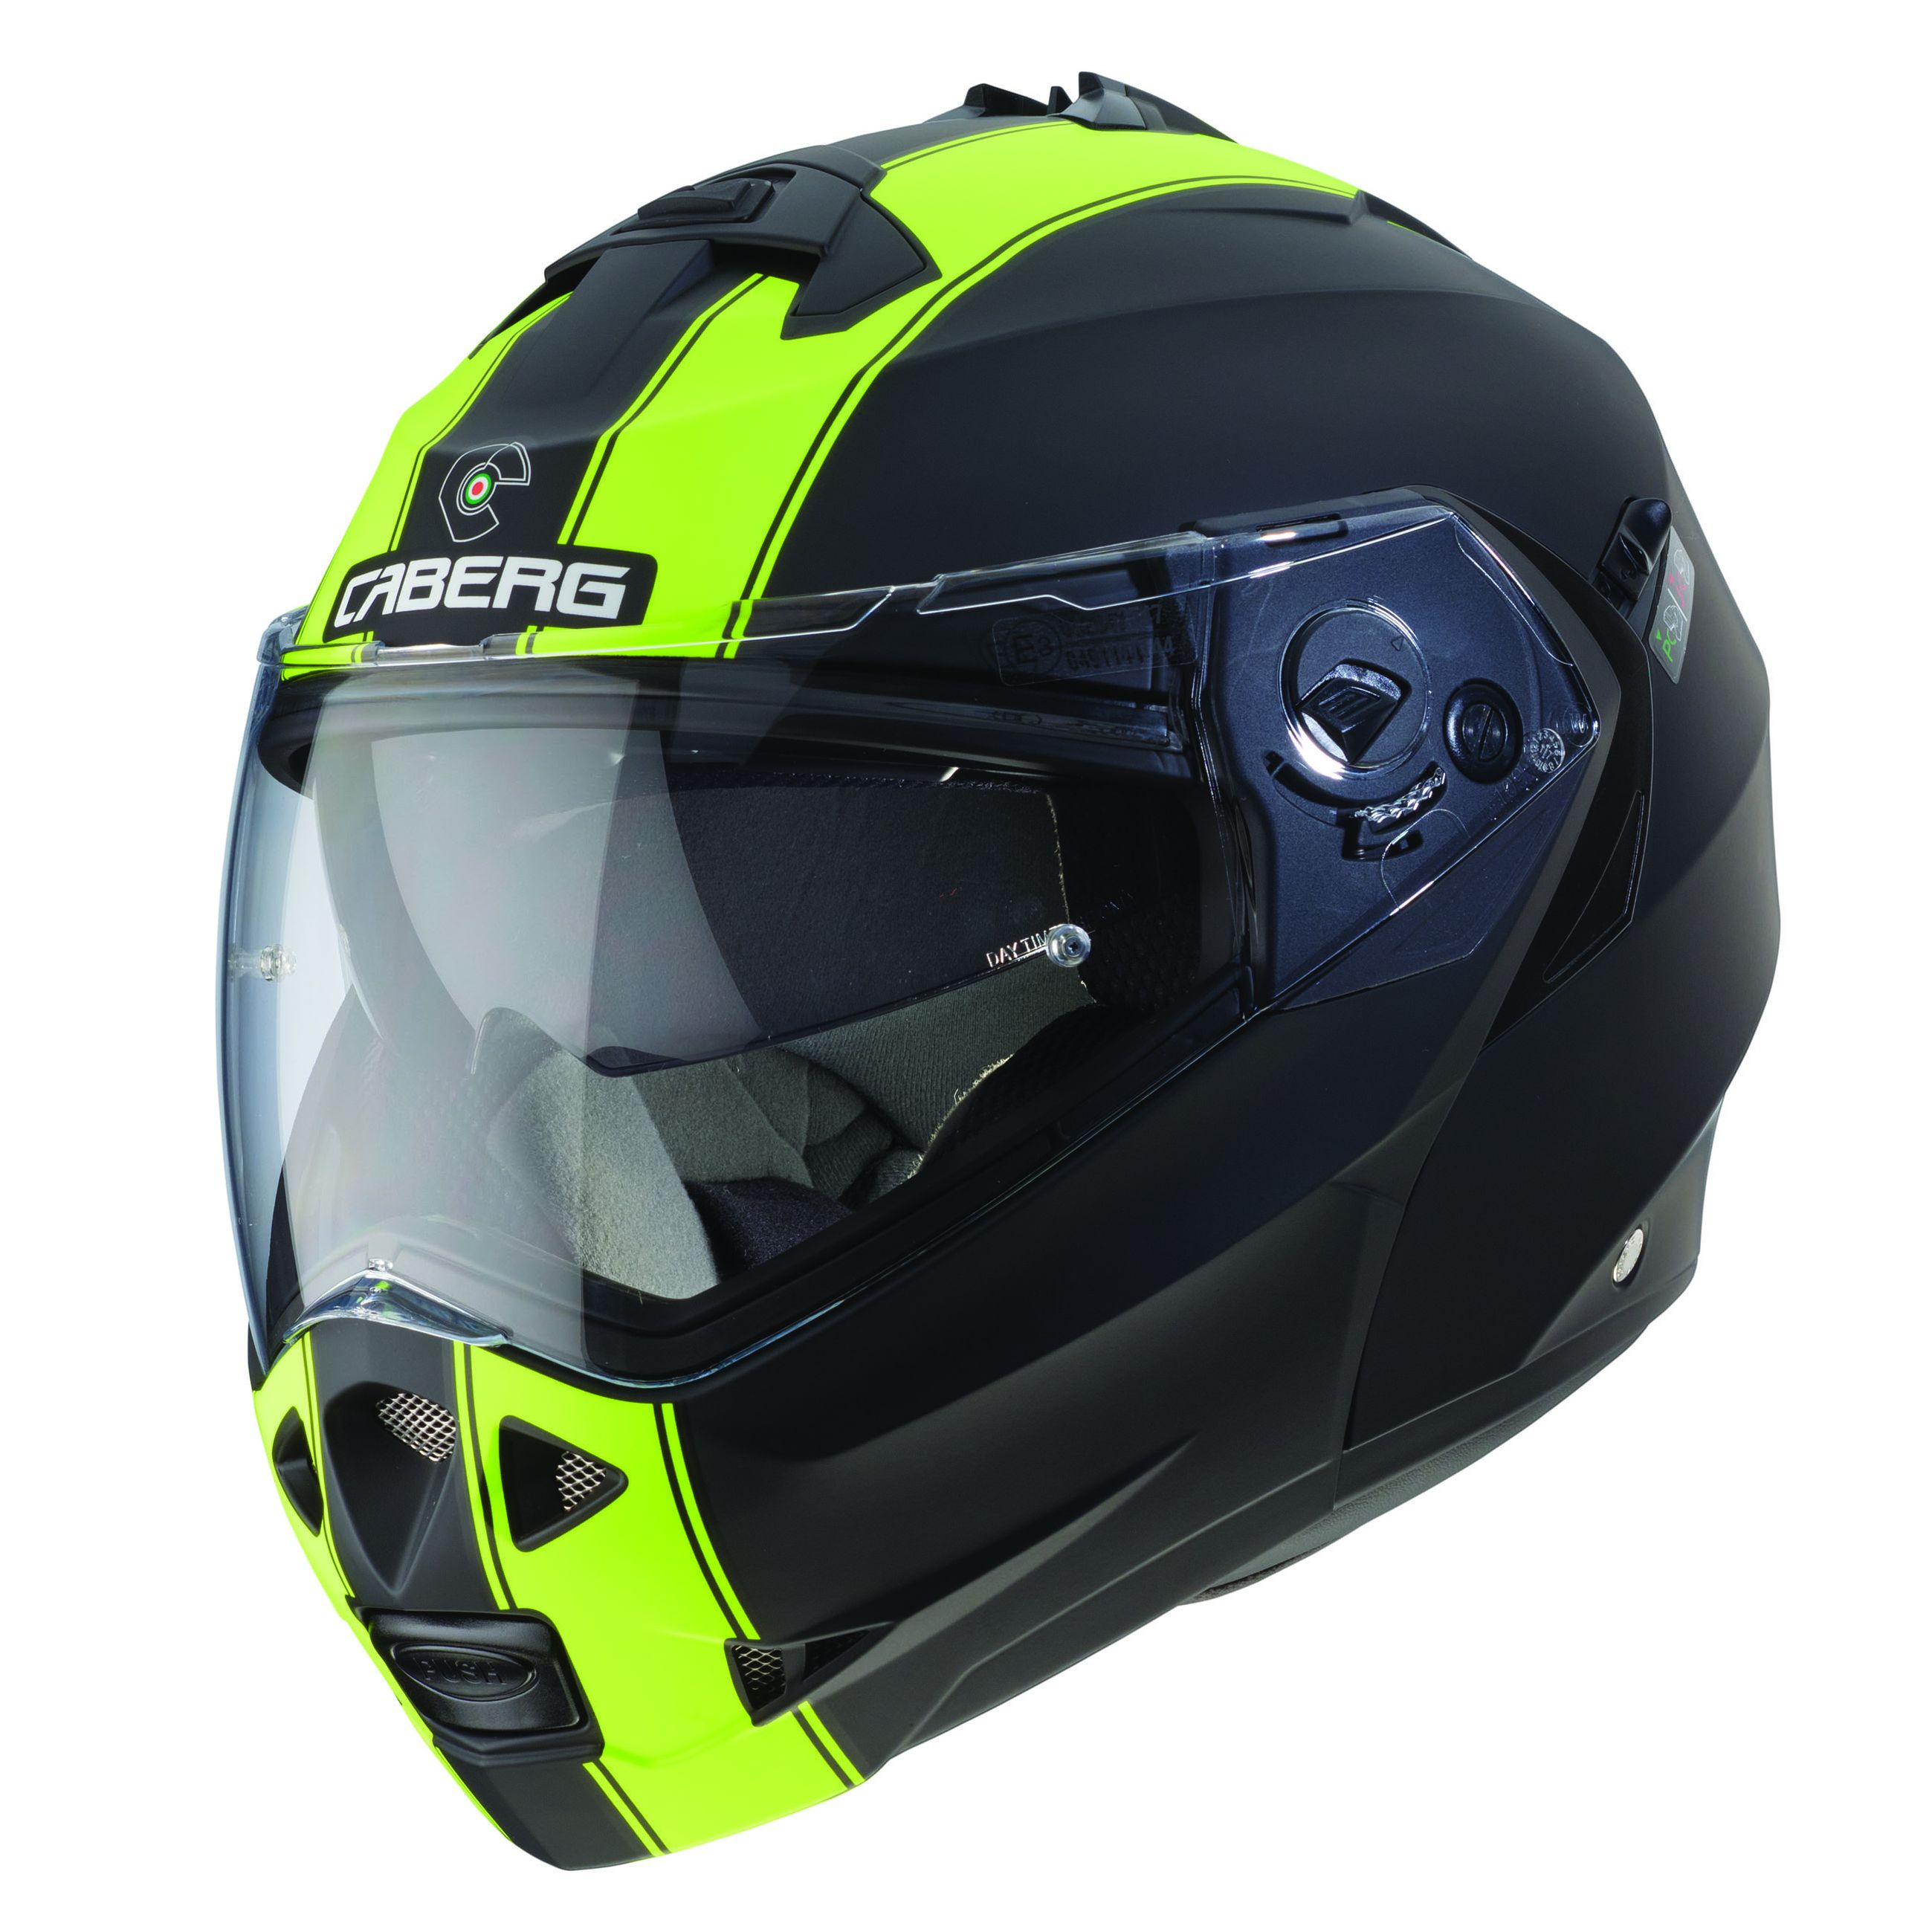 Casco Caberg DUKE II LEGEND